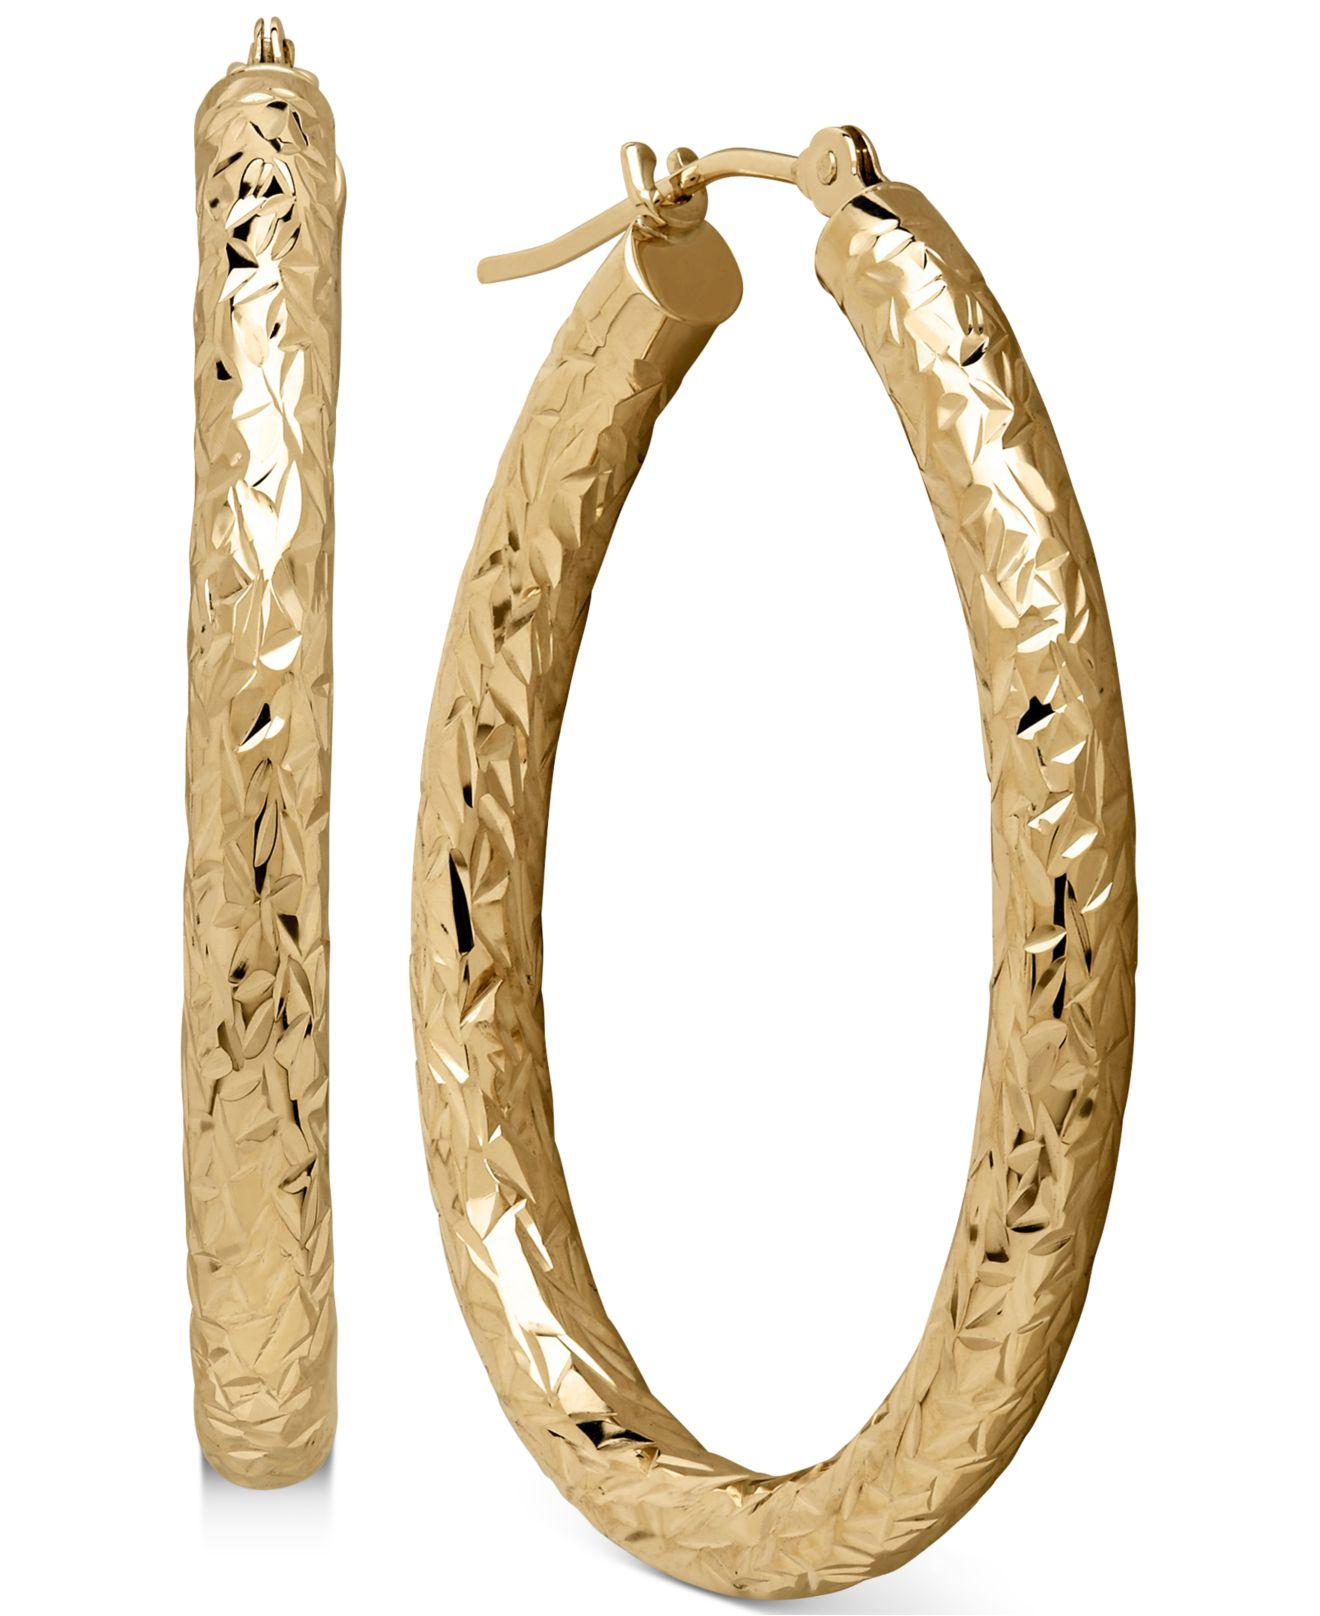 Lyst - Macy'S Diamond-cut Hoop Earrings In 14k Gold in ...